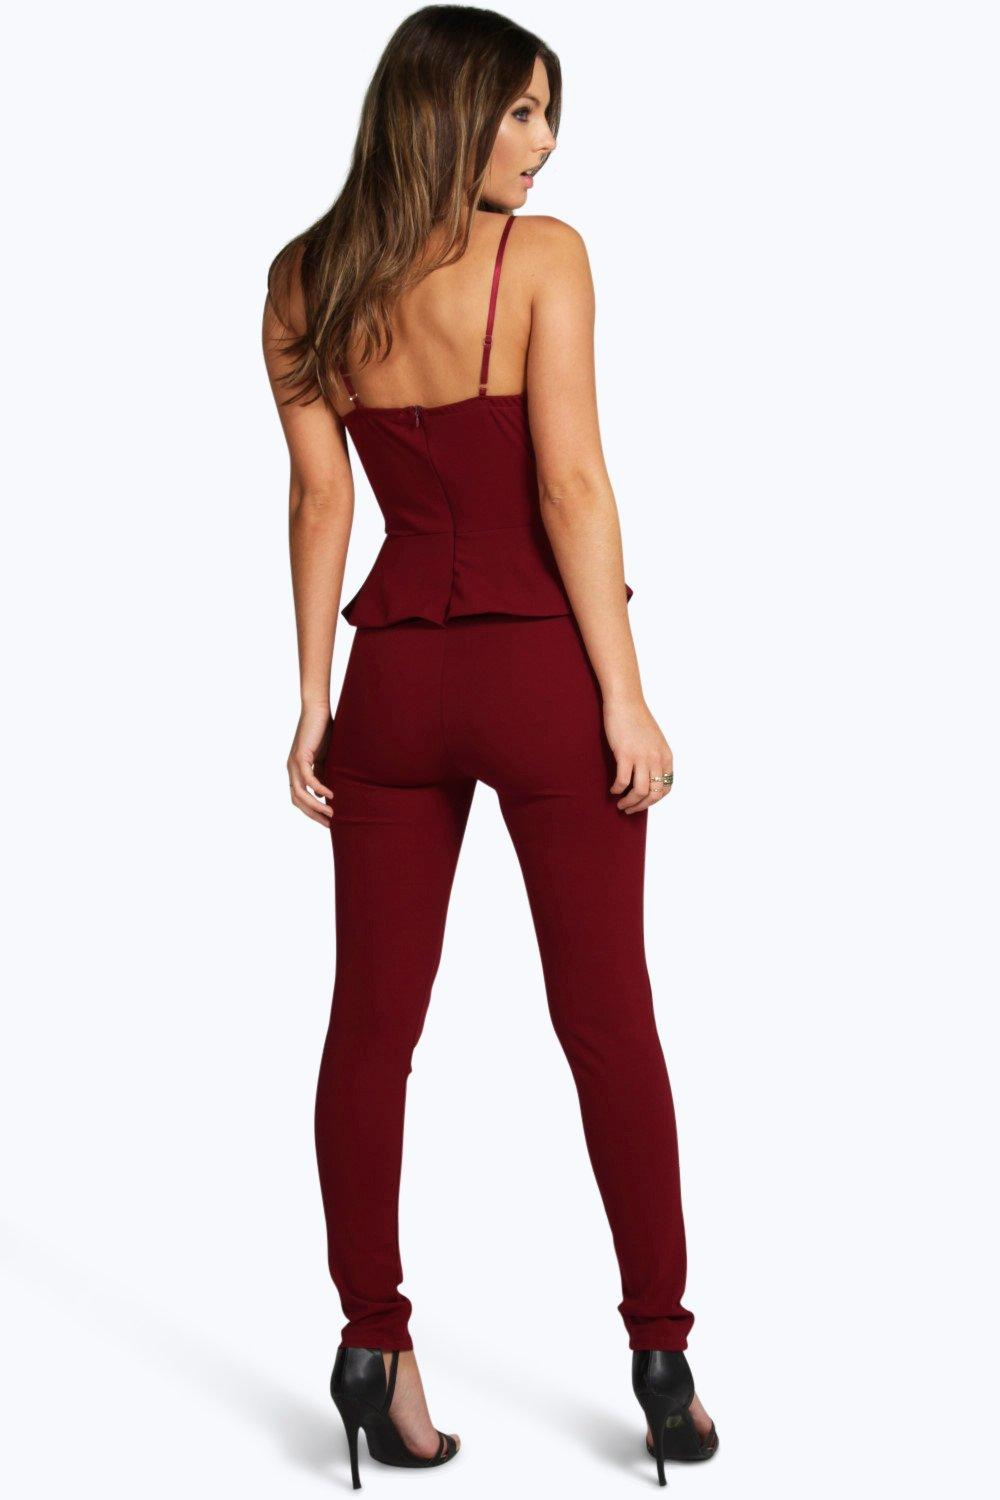 Ericdress Tassel Print Skinny Women's Jumpsuits > Ericdress Floral Print Wide Legs Women's Jumpsuits > There are kinds of cheap elegant jumpsuits pants for women offered at jomp16.tk There are formal going out jumpsuits for party and casual jumpsuits to wear in ordinary days. If you are high, you can choose long jumpsuits for tall.